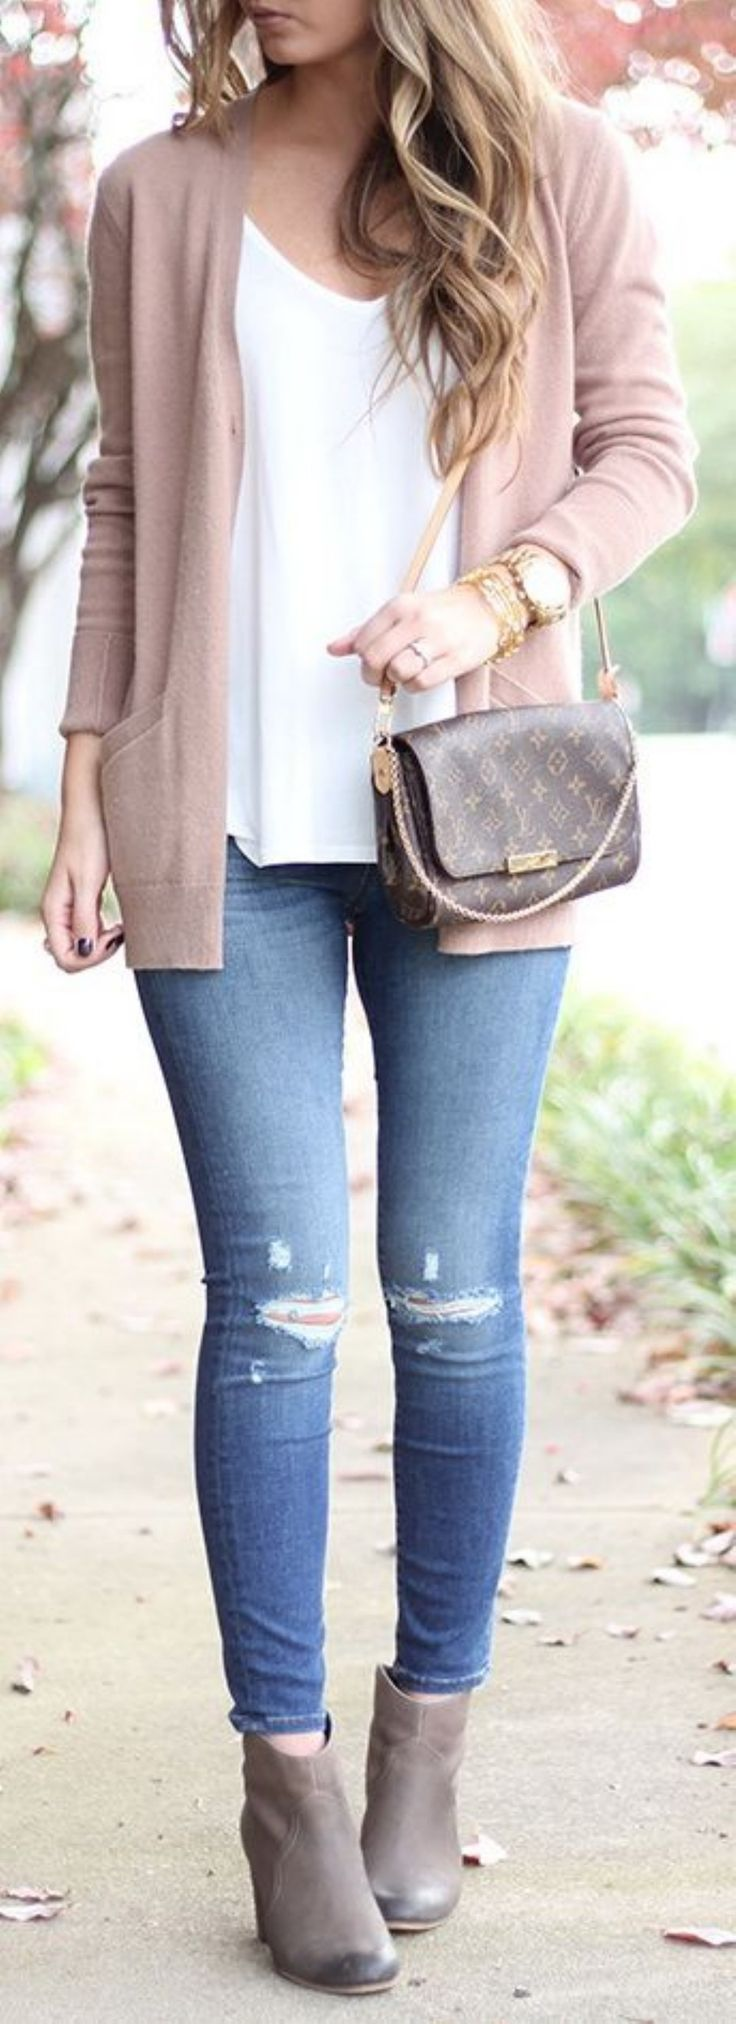 Awesome 30 Simple and Casual Outfit to Wear Everyday from https://www.fashionetter.com/2017/04/07/30-simple-casual-outfit-wear-everyday/